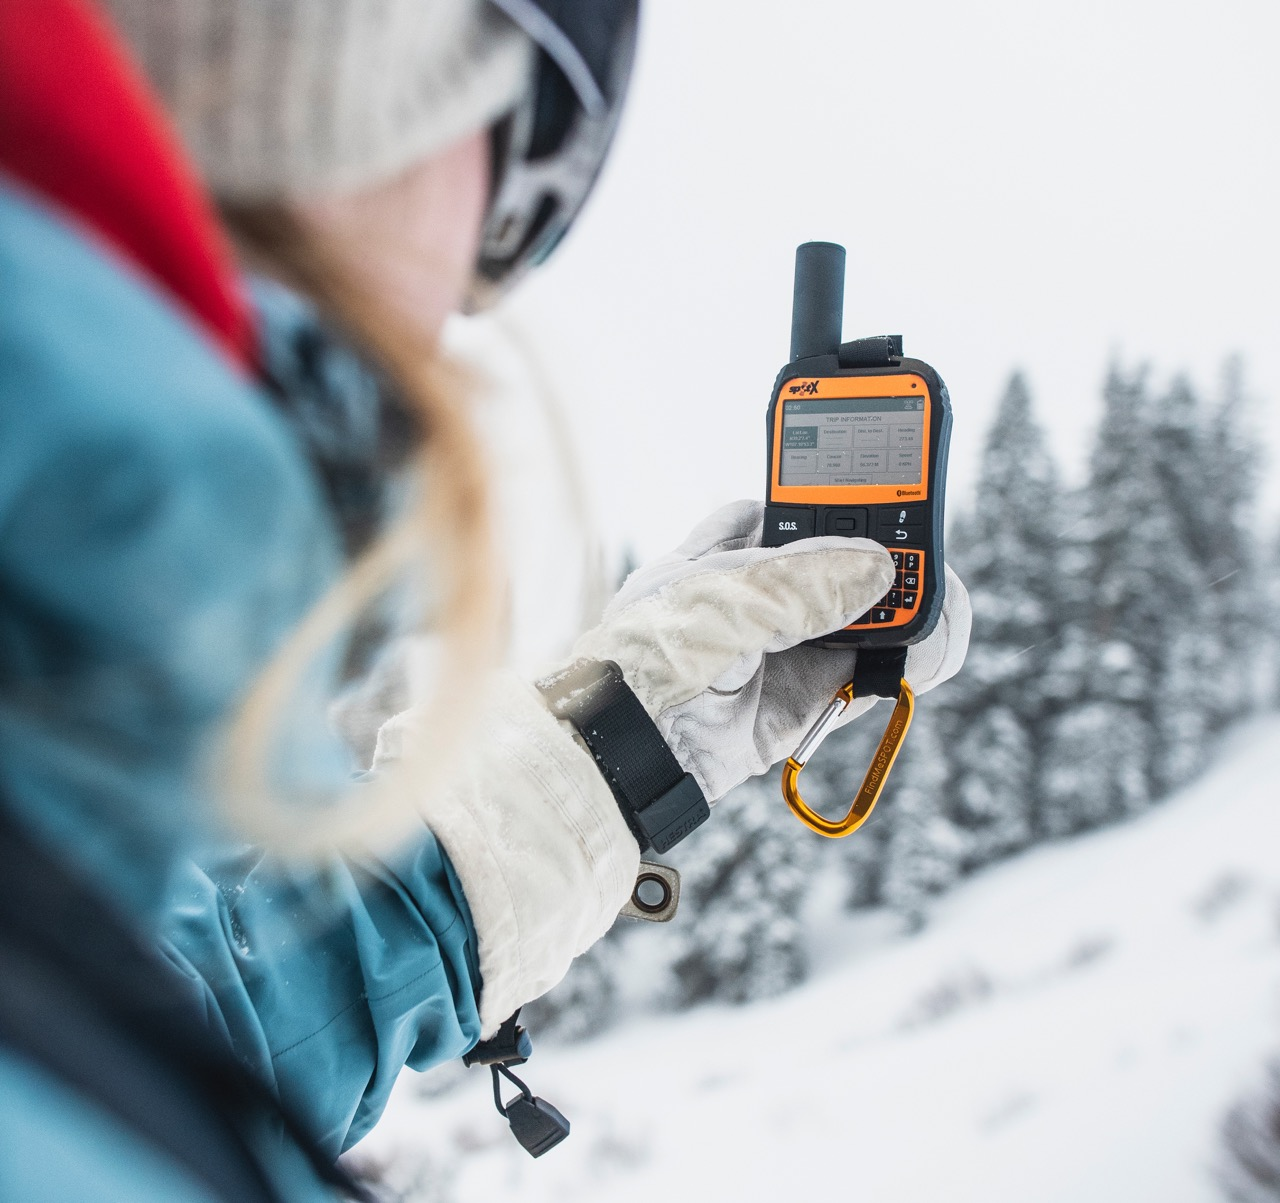 SPOT X for snowmobiling provides SOS emergency contact.